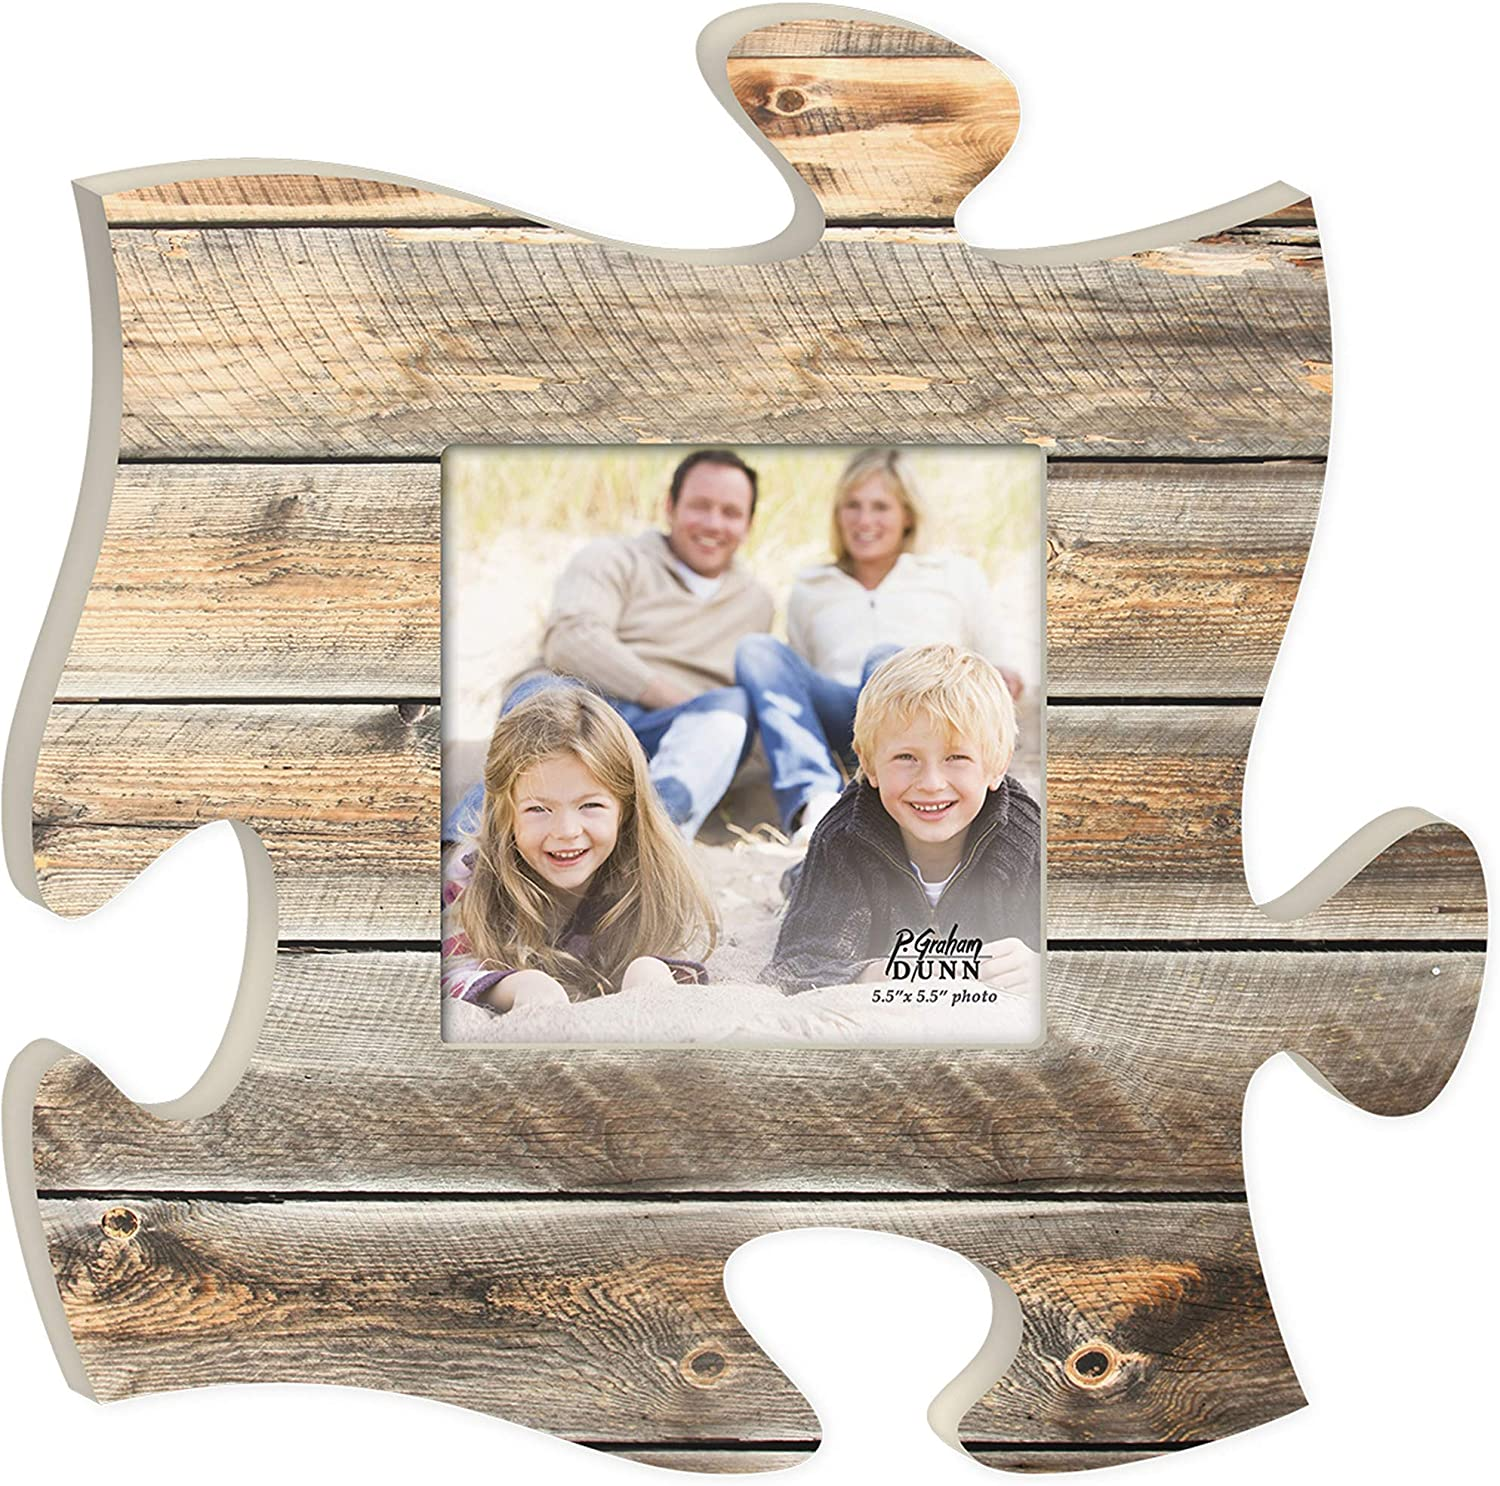 P. Graham Dunn Distressed Light Wood Look 12 x 12 Inch Wood Puzzle Piece Wall Sign Frame Plaque